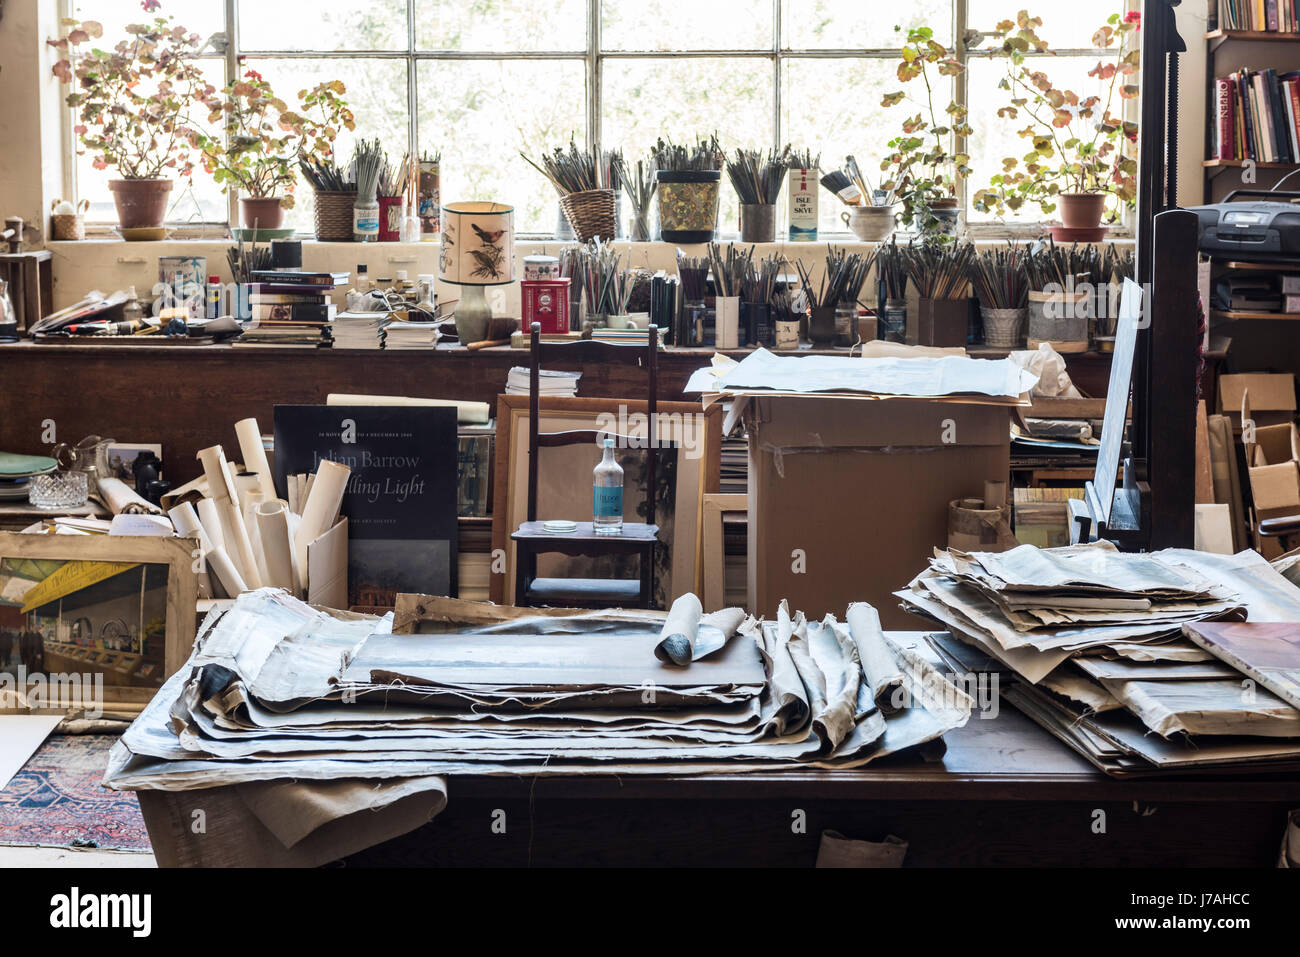 Unframed canvasses and paint brushes in jars in bohemian artists studio with large window - Stock Image